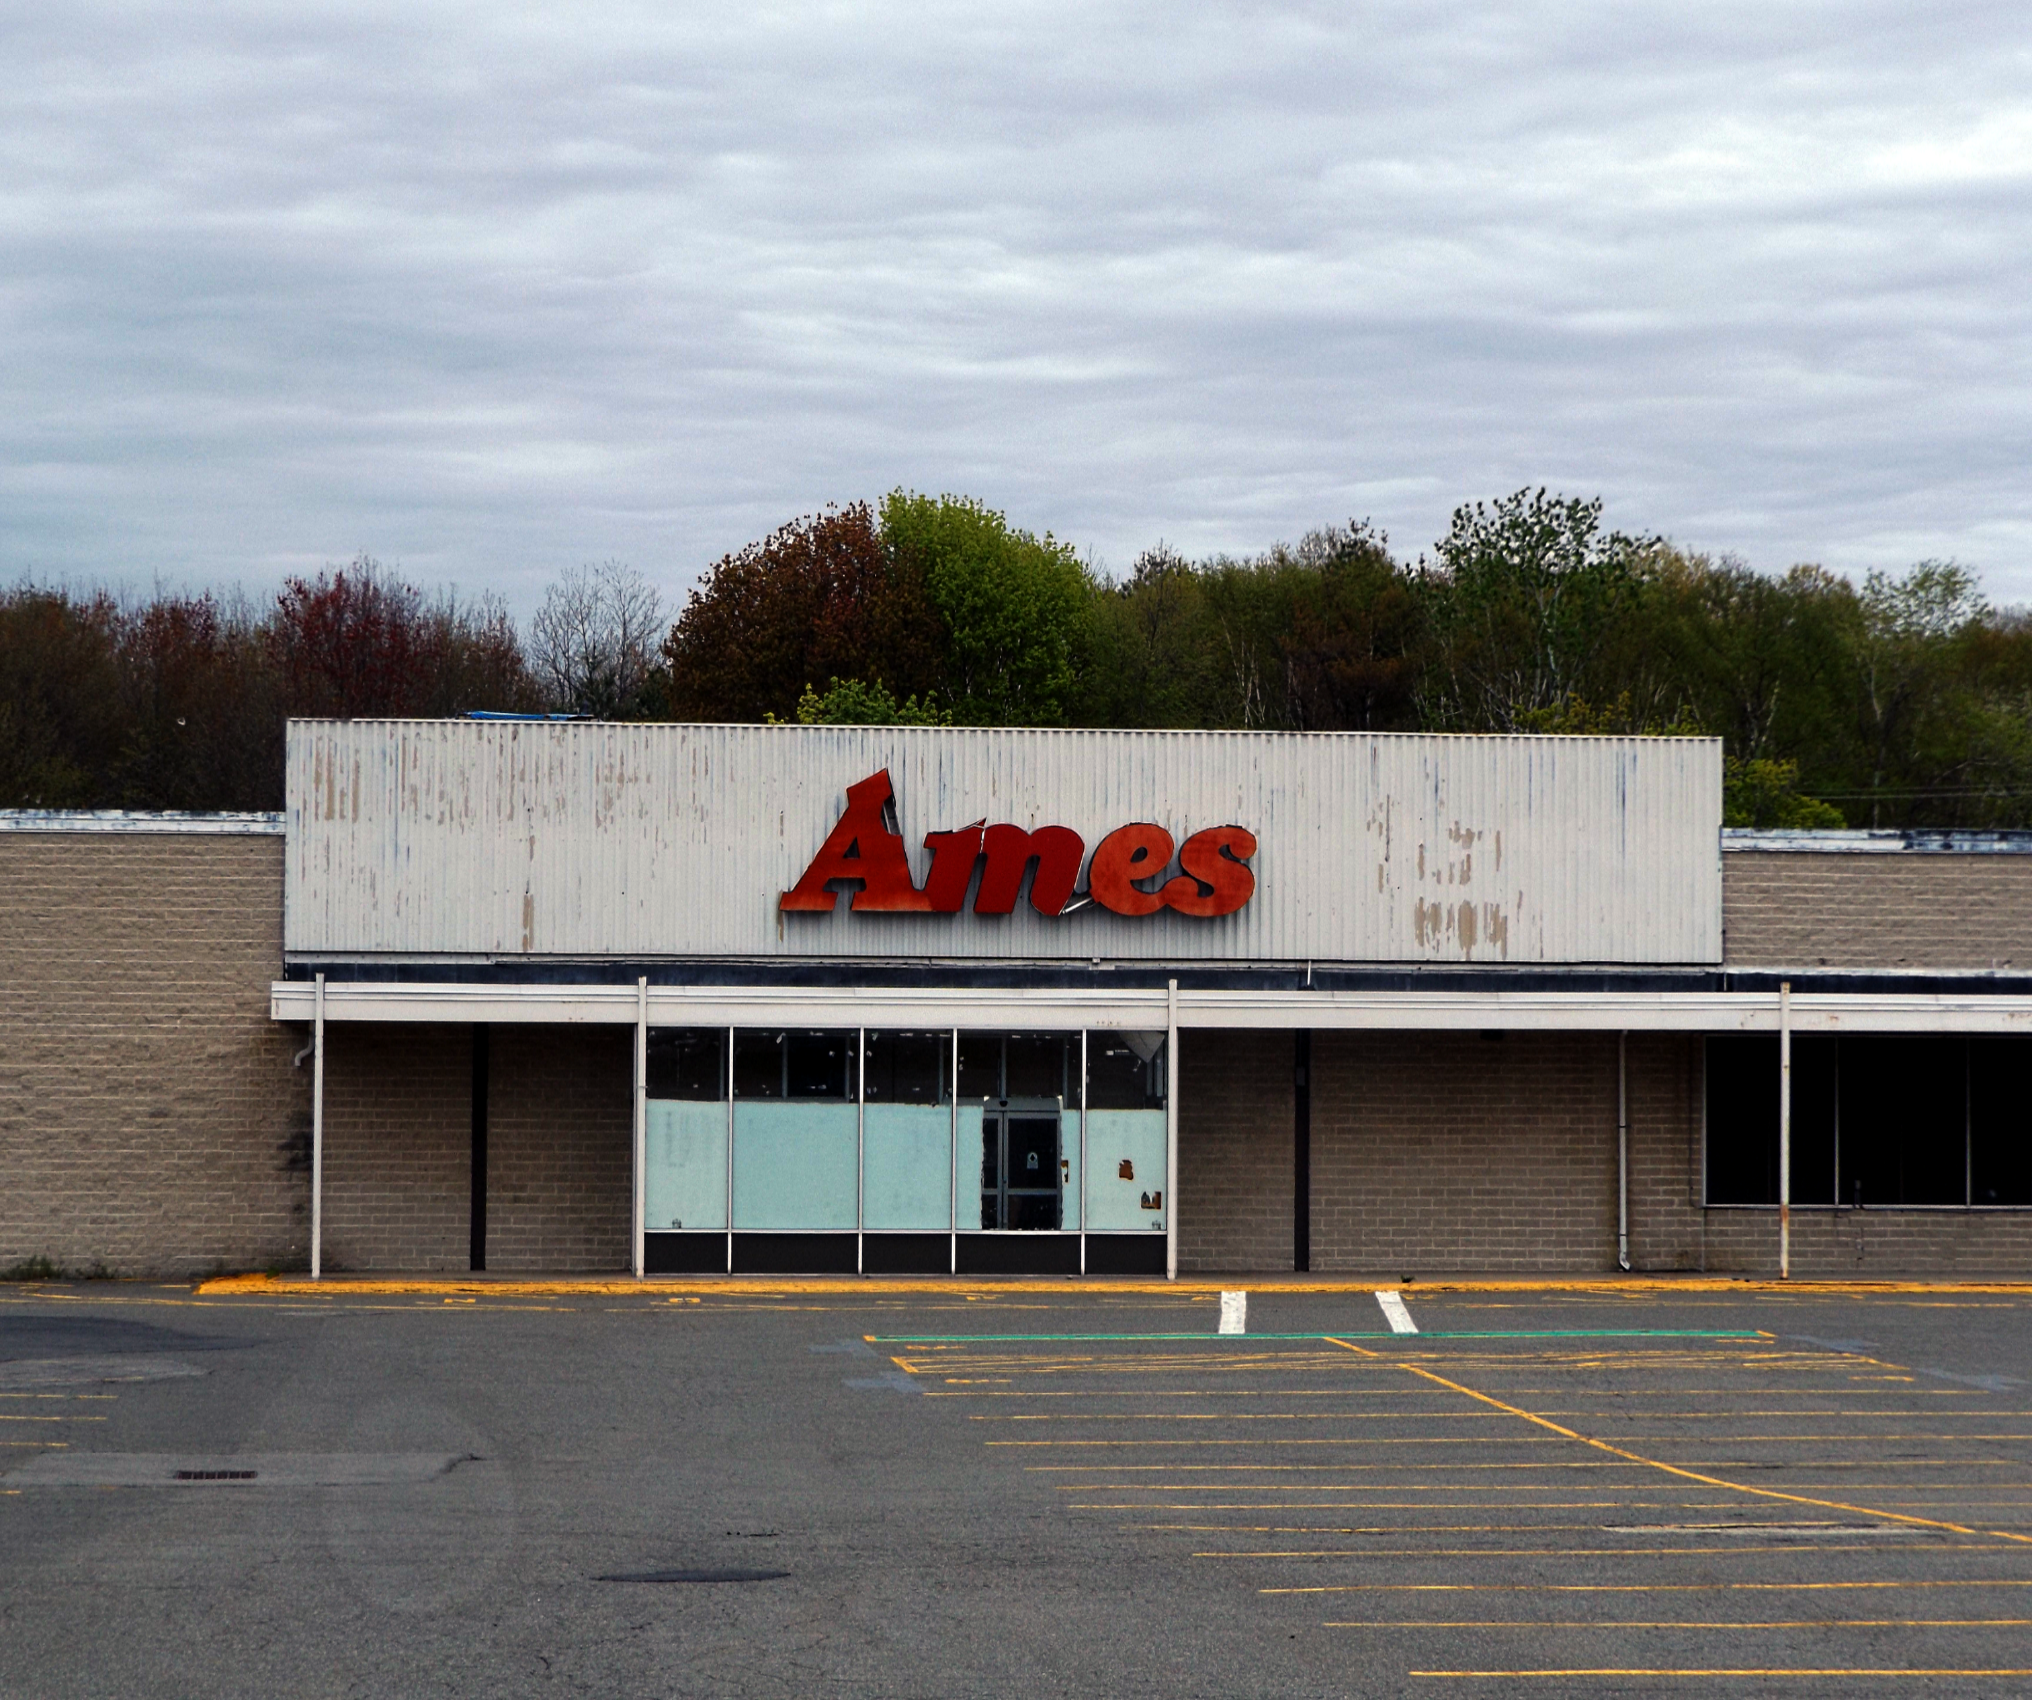 Abandoned Ames department store Seabrook NH. [2032x1700] [OC] | Abandoned,  Department store, Seabrook